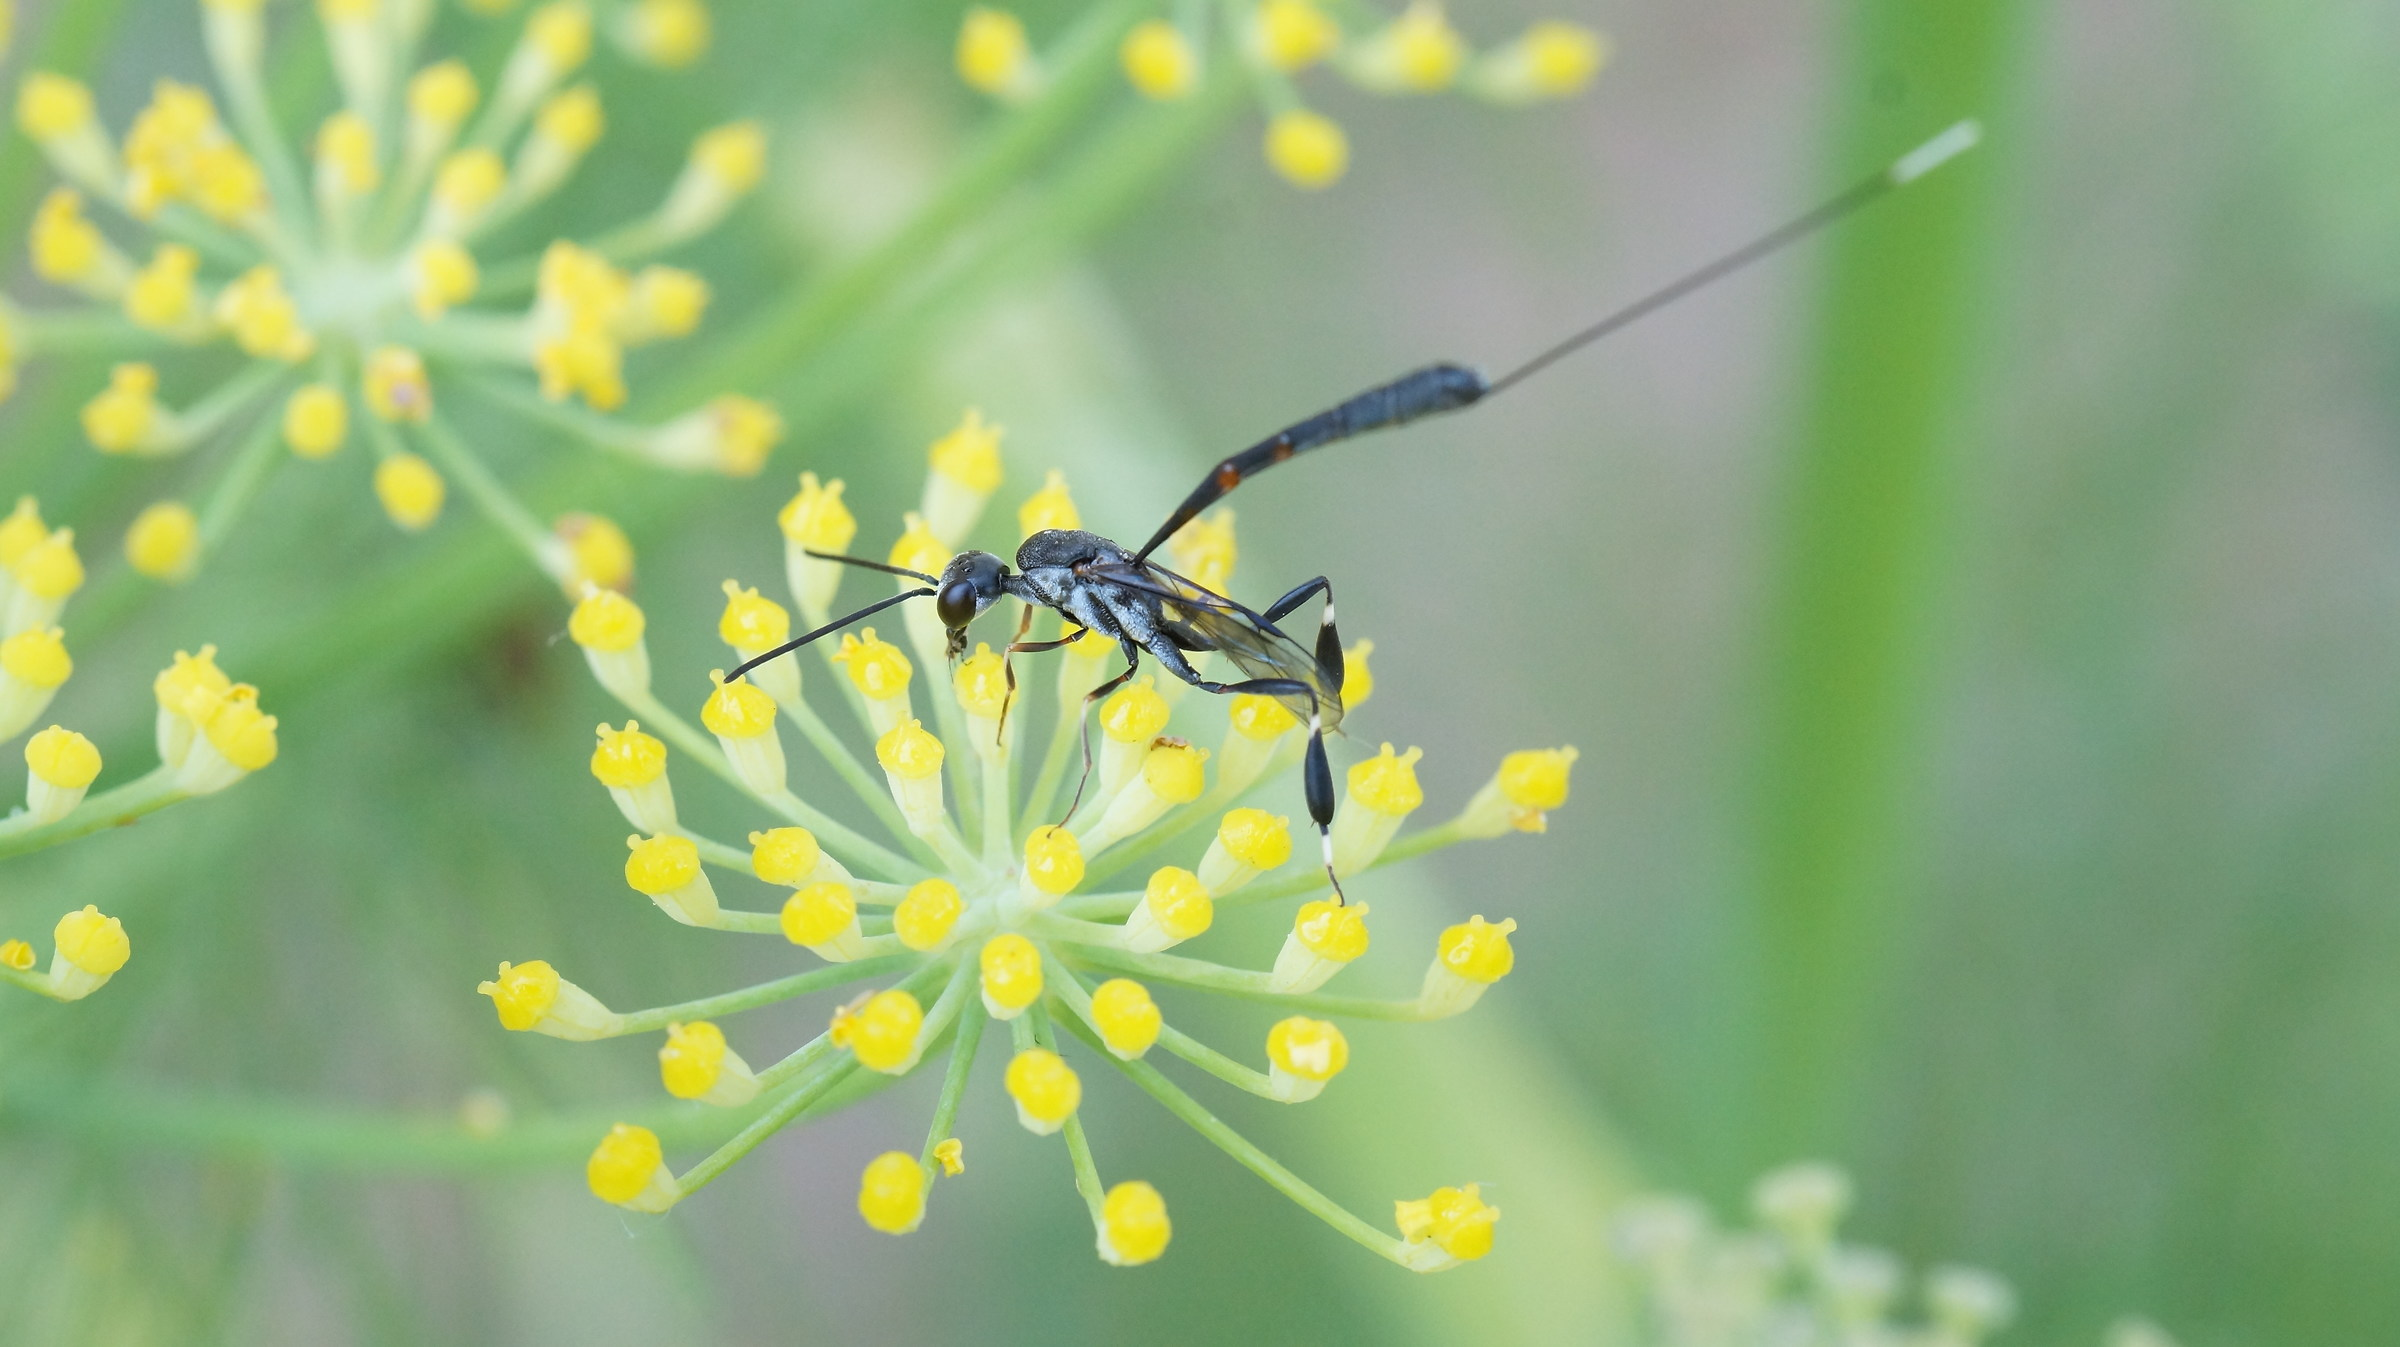 Icneumone on fennel flowers....